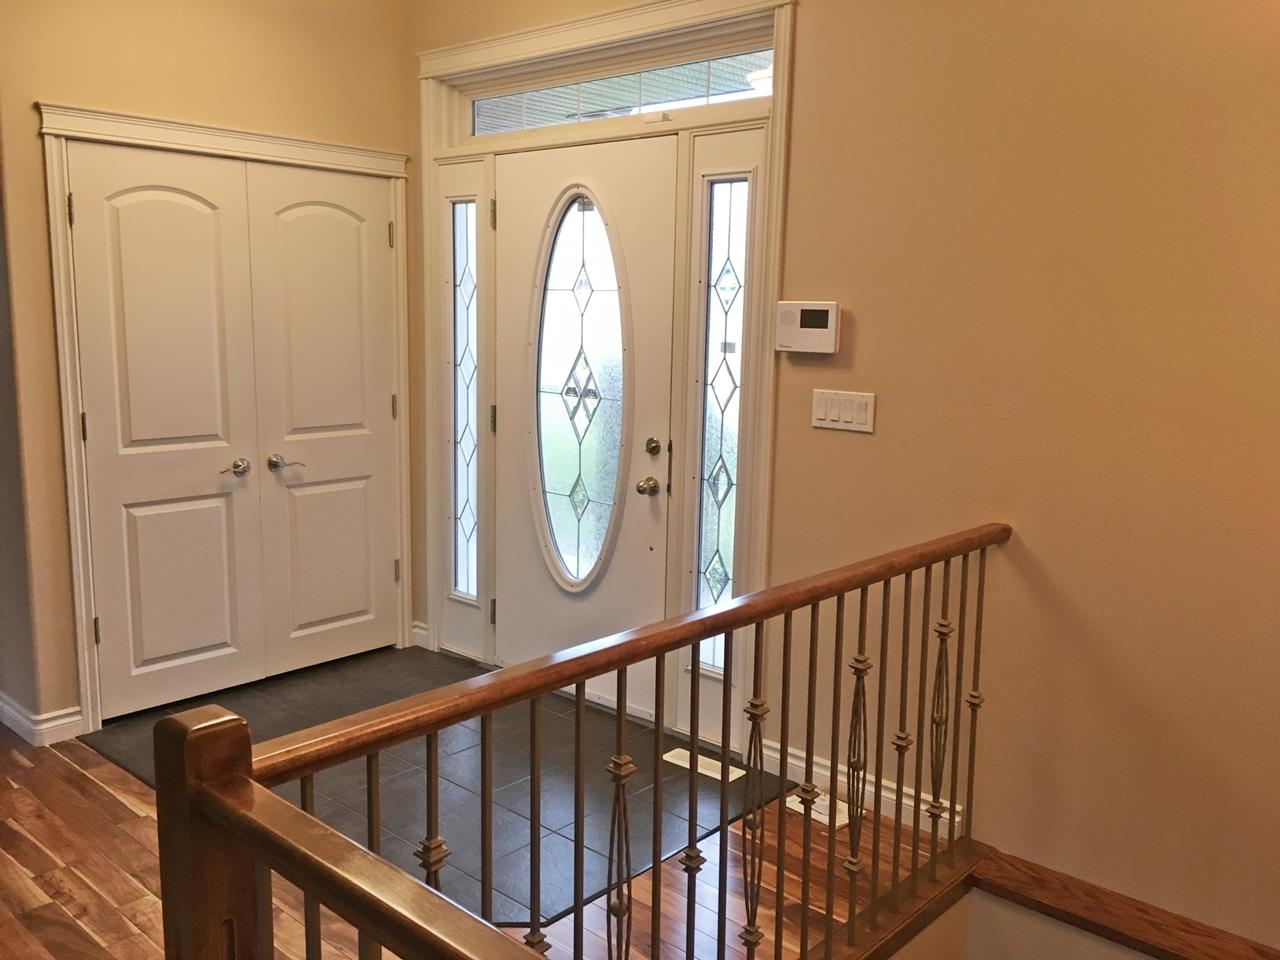 Photo 4: 3621 47 Street: Gibbons House for sale : MLS® # E4074645